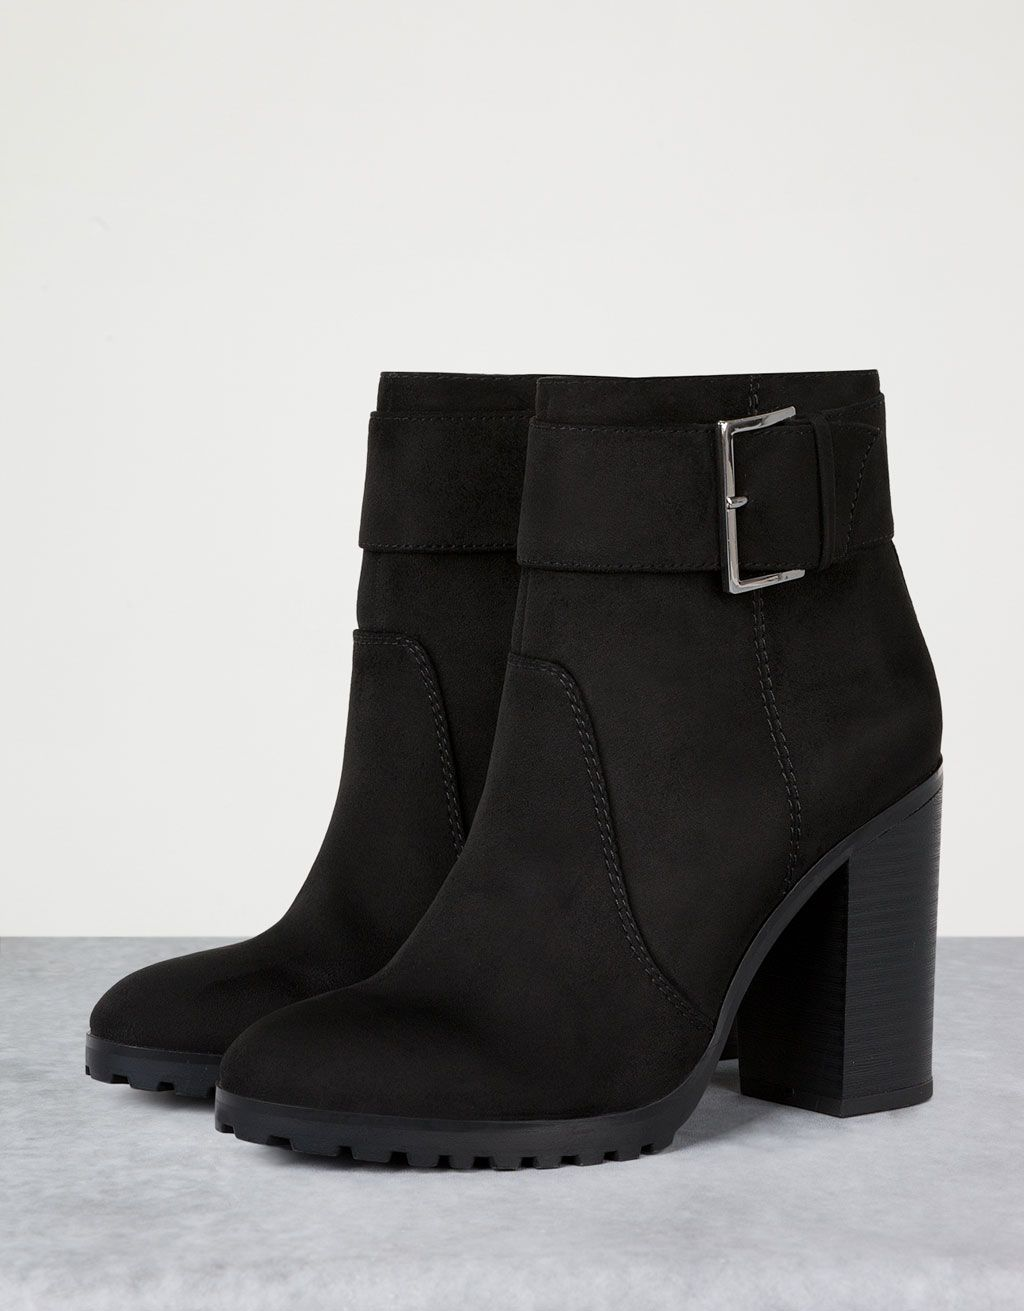 bershka armenia - buckle ankle boots | shoes | pinterest